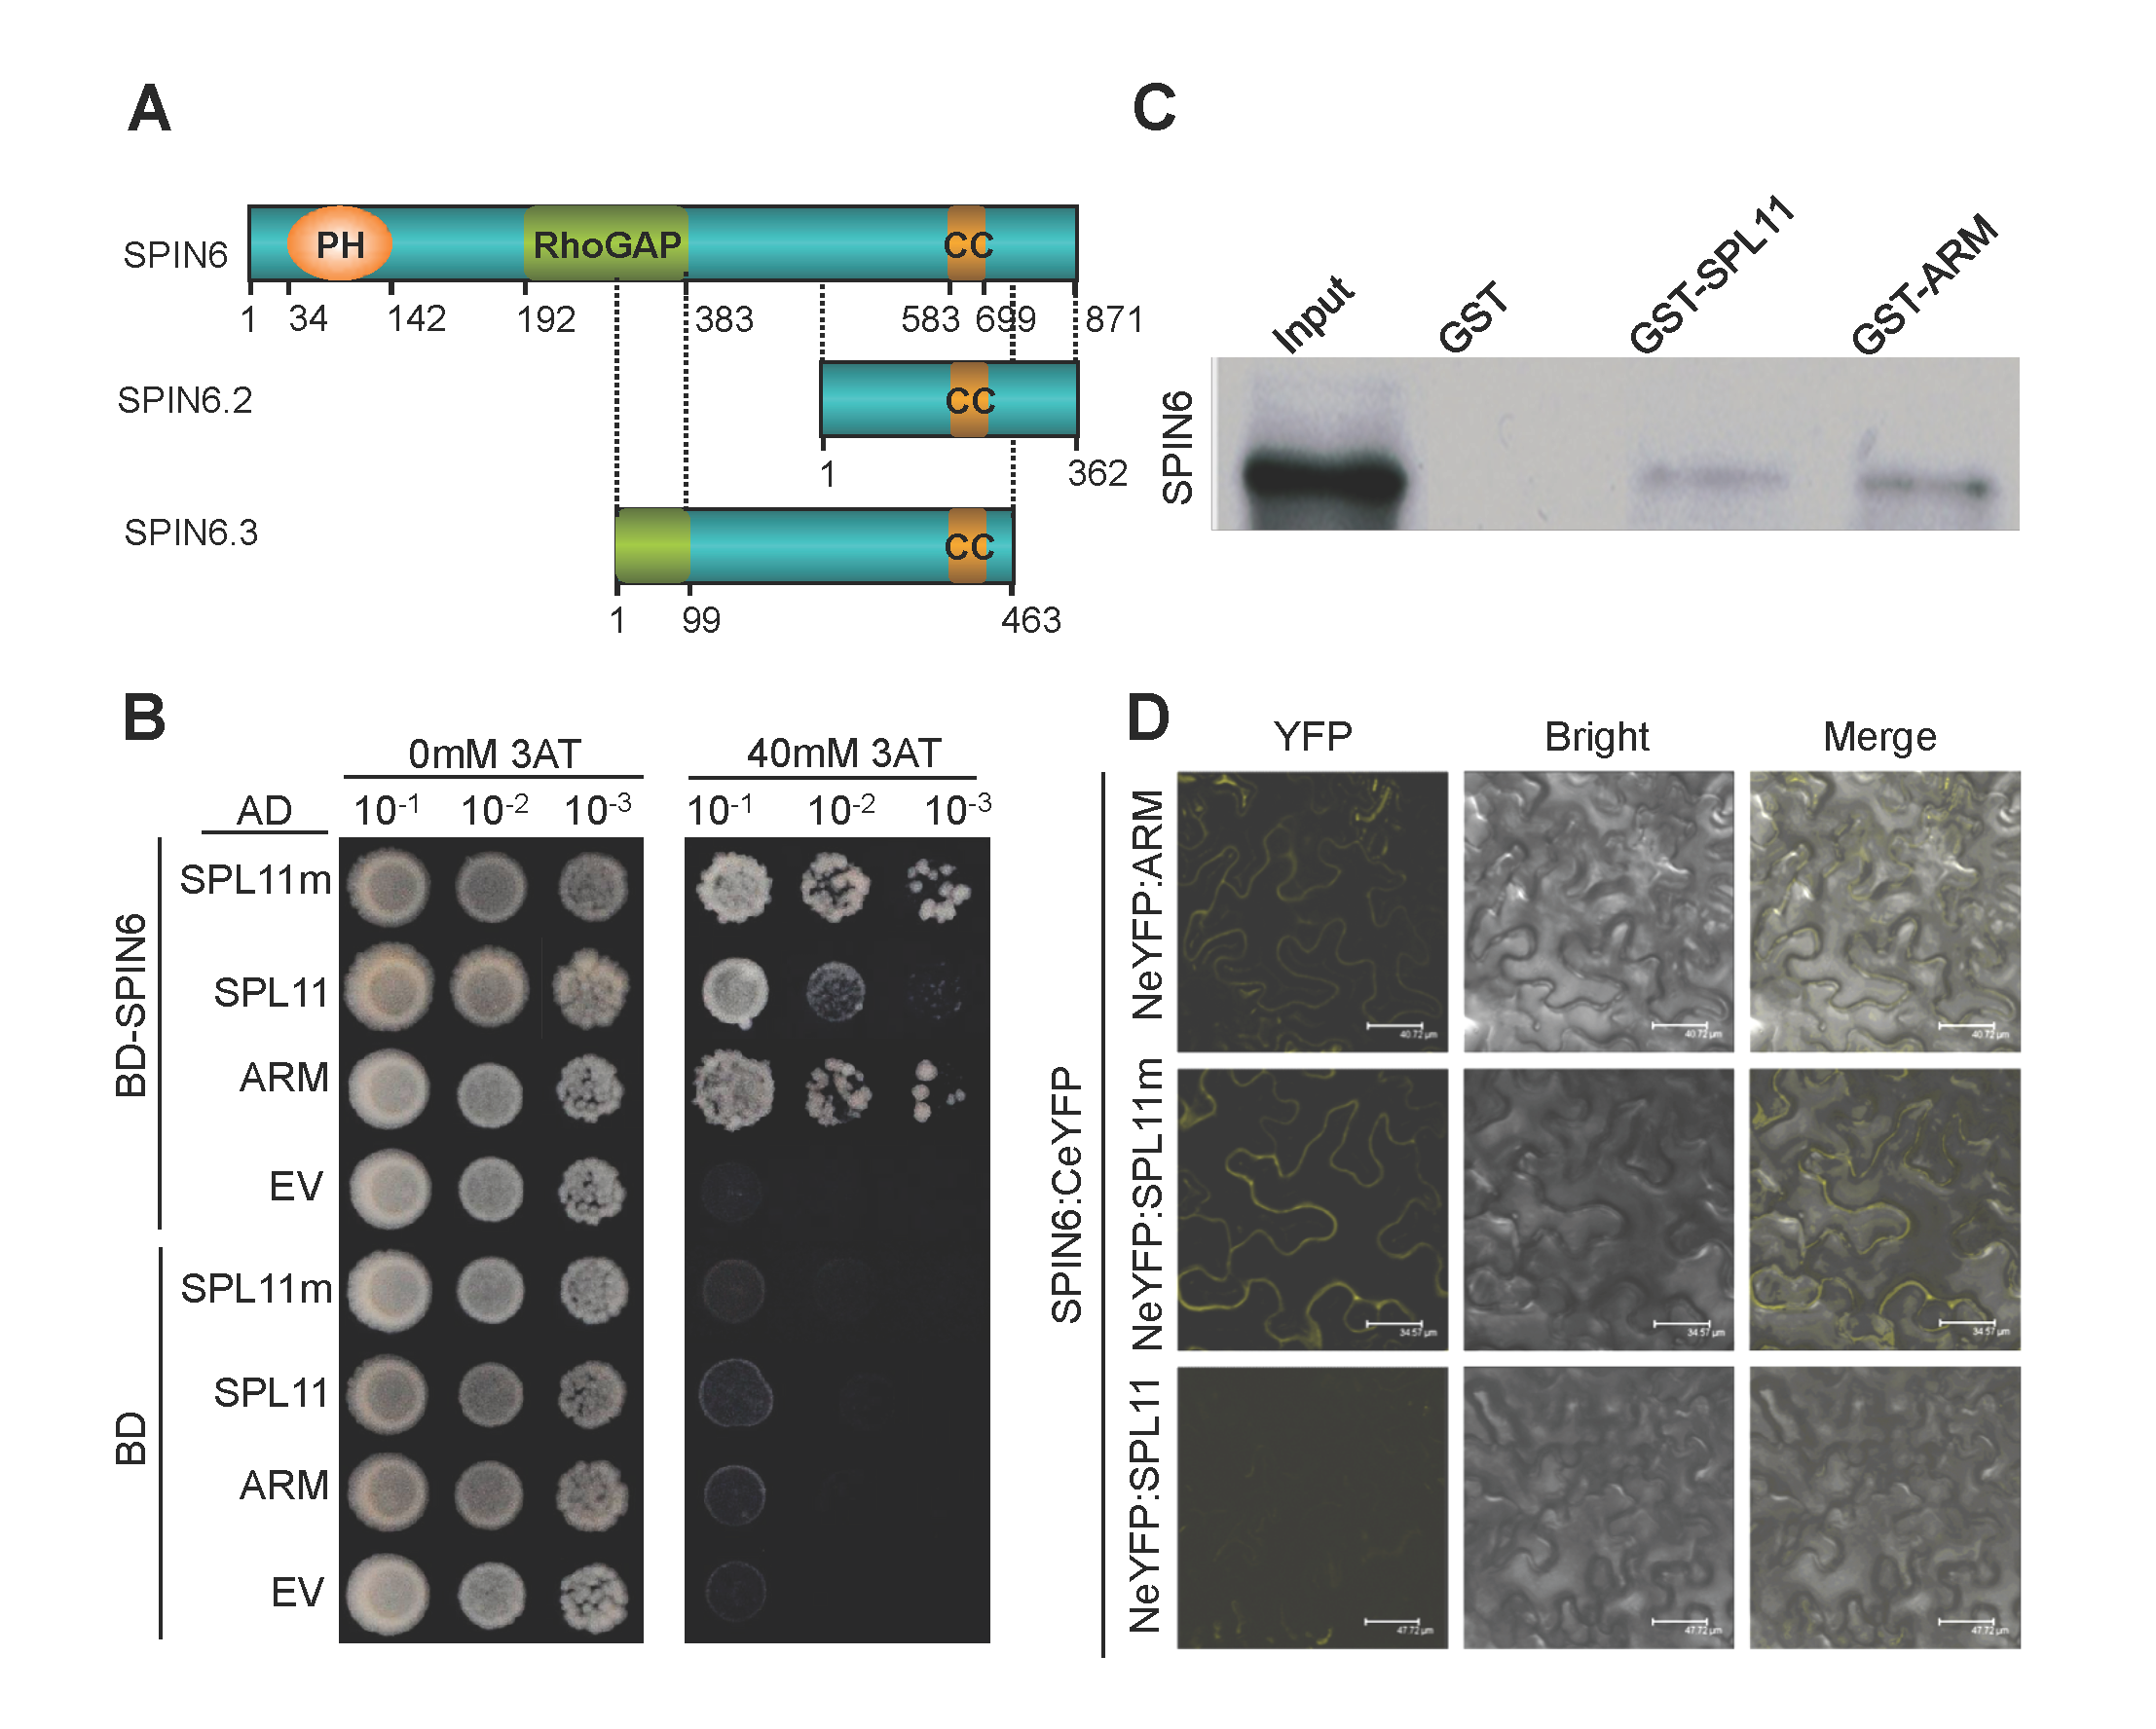 SPIN6 is a Rho GTPase-activating protein (RhoGAP) and interacts with SPL11 <i>in vitro</i> and <i>in vivo</i>.